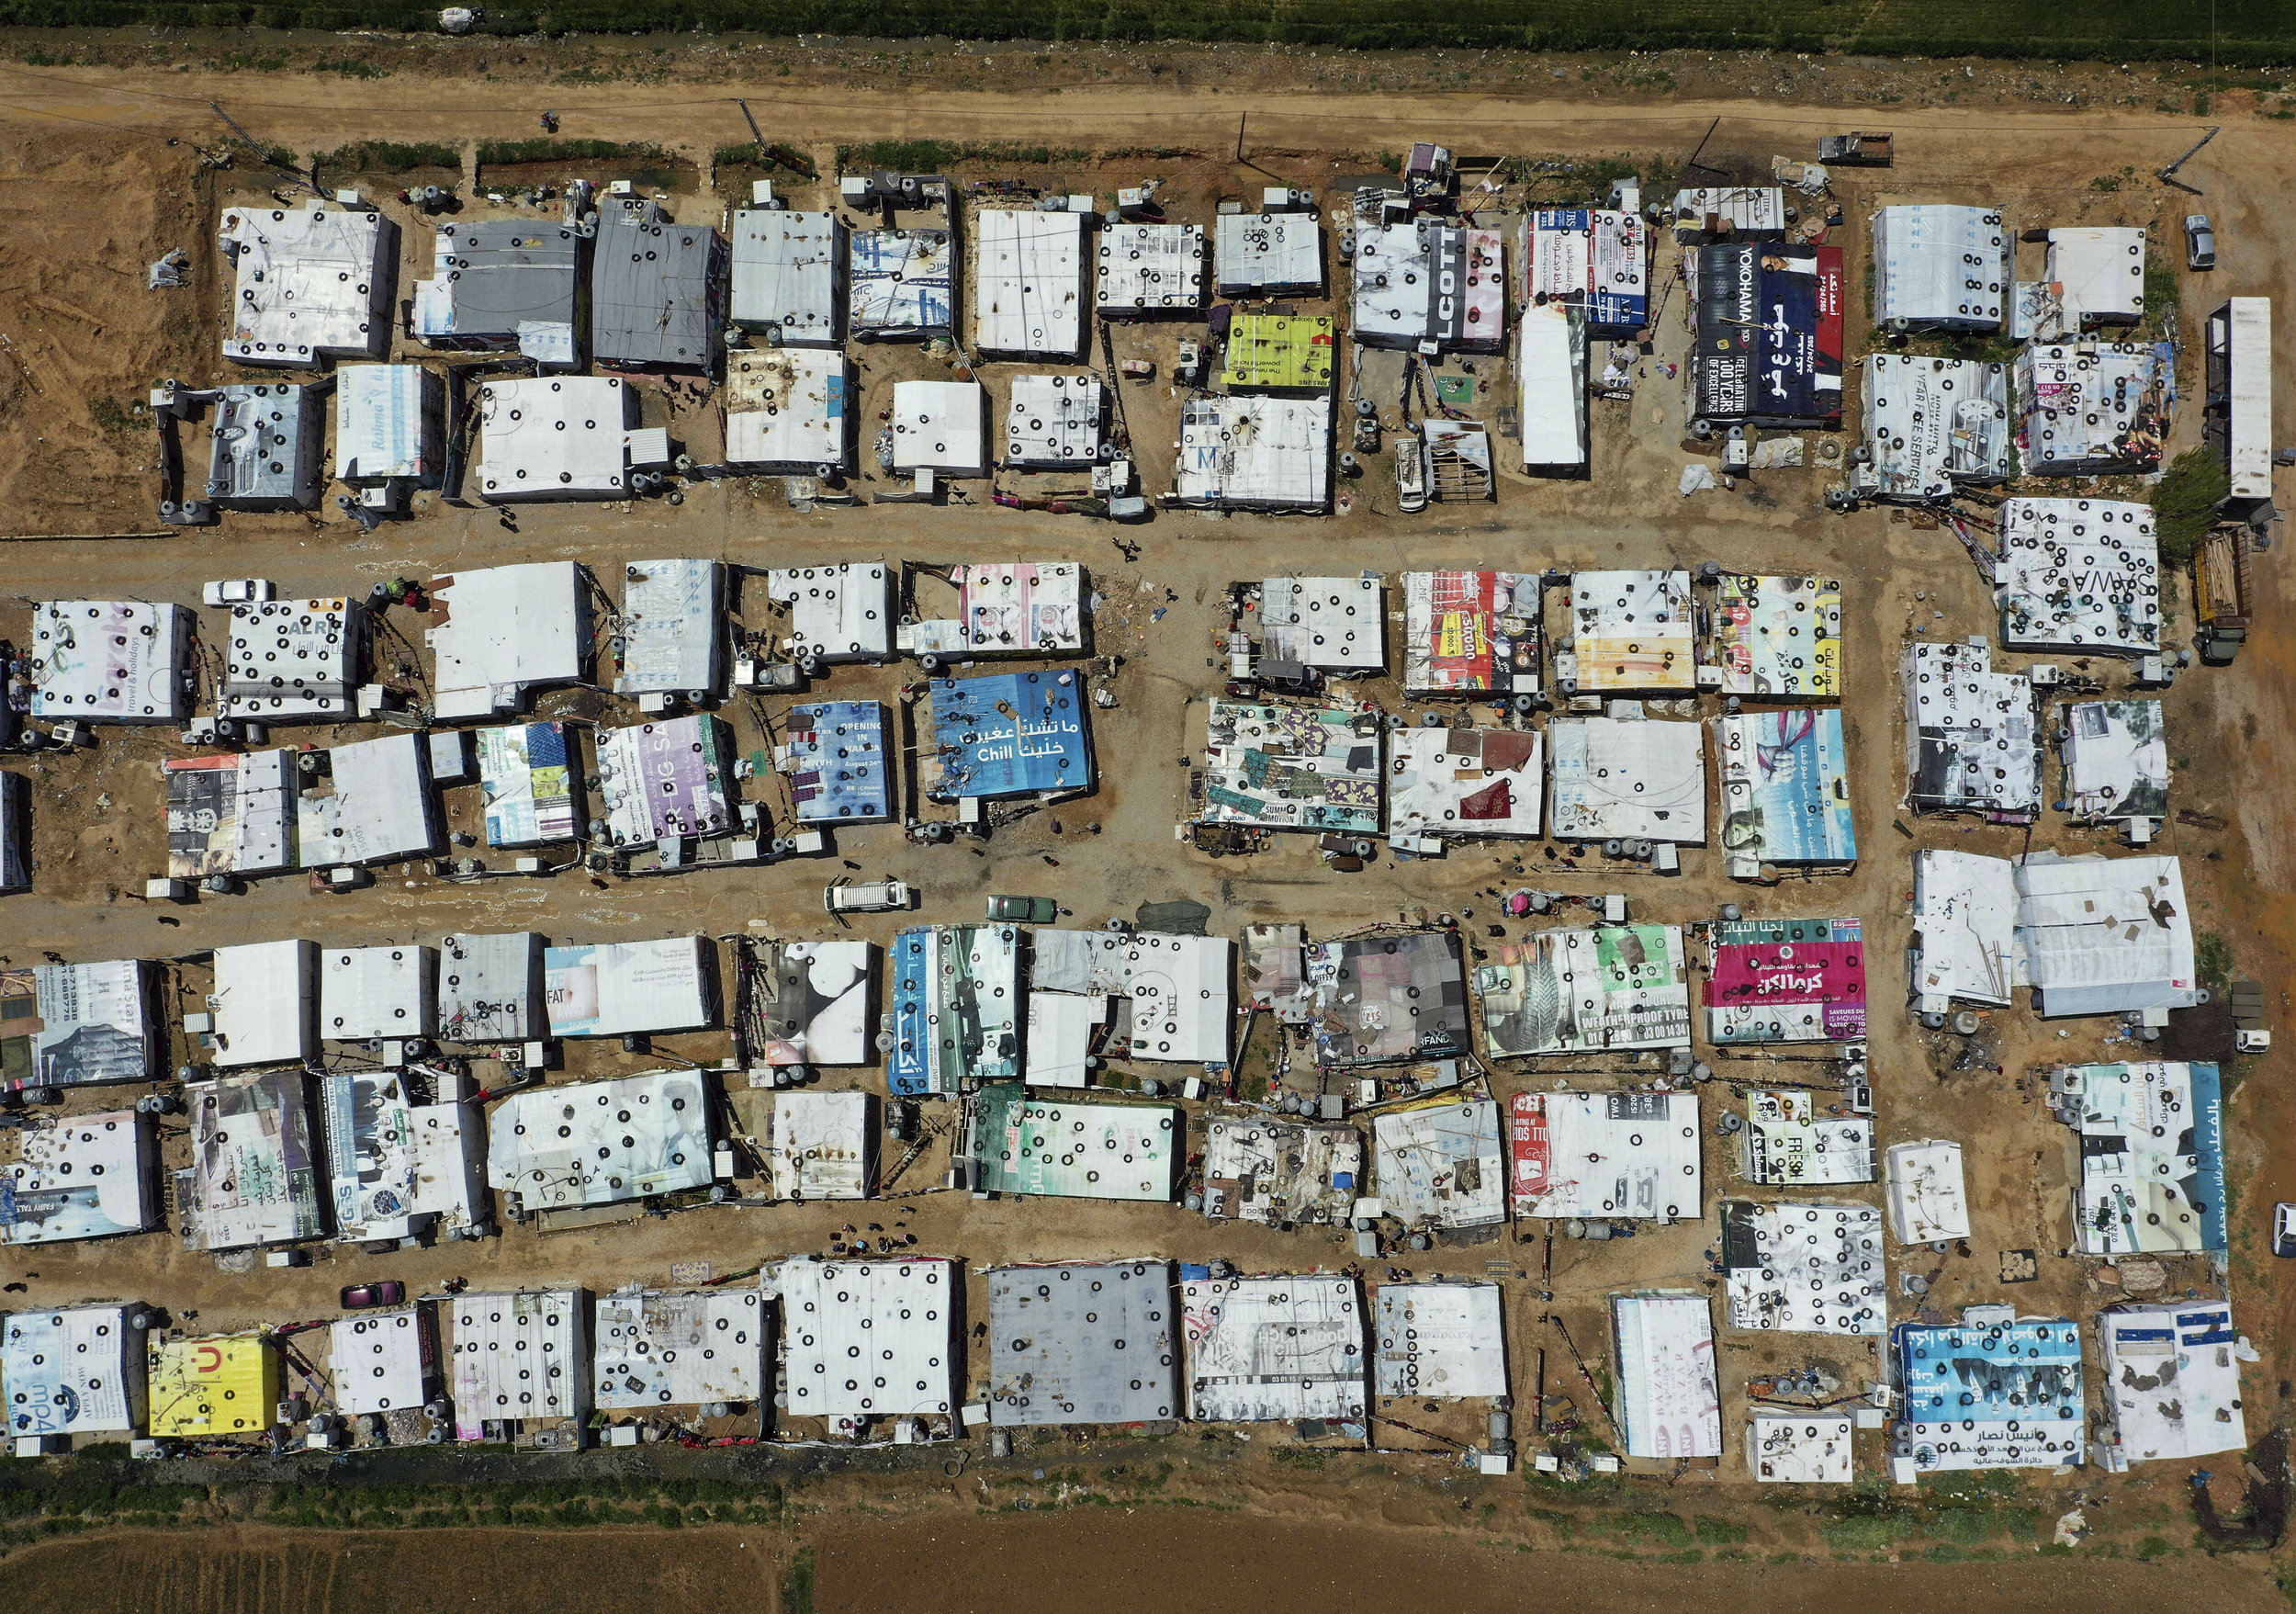 An aerial view shows an informal Syrian refugee camp, in the Bekaa valley town of Saadnayel, east Lebanon, Tuesday, April 23, 2019. (AP Photo/Hussein Malla)